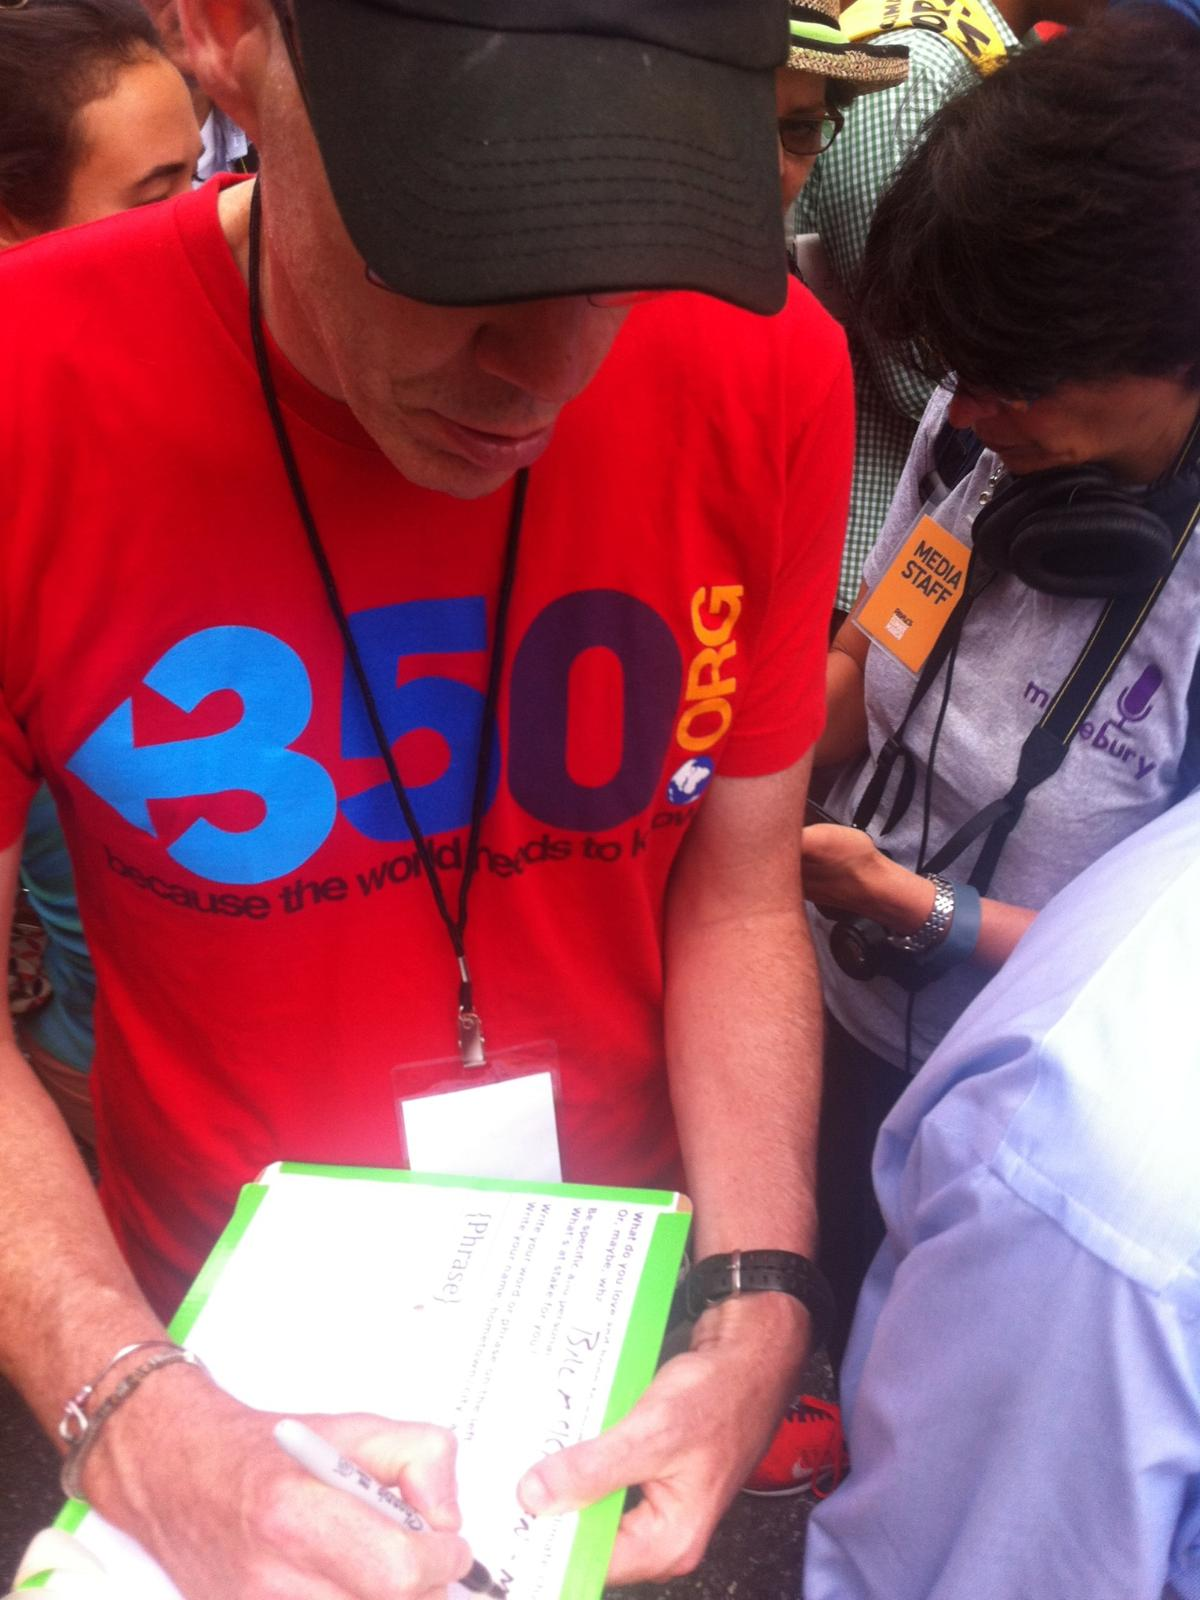 Bill McKibben makes a Climate Ribbon at the People's Climate March.